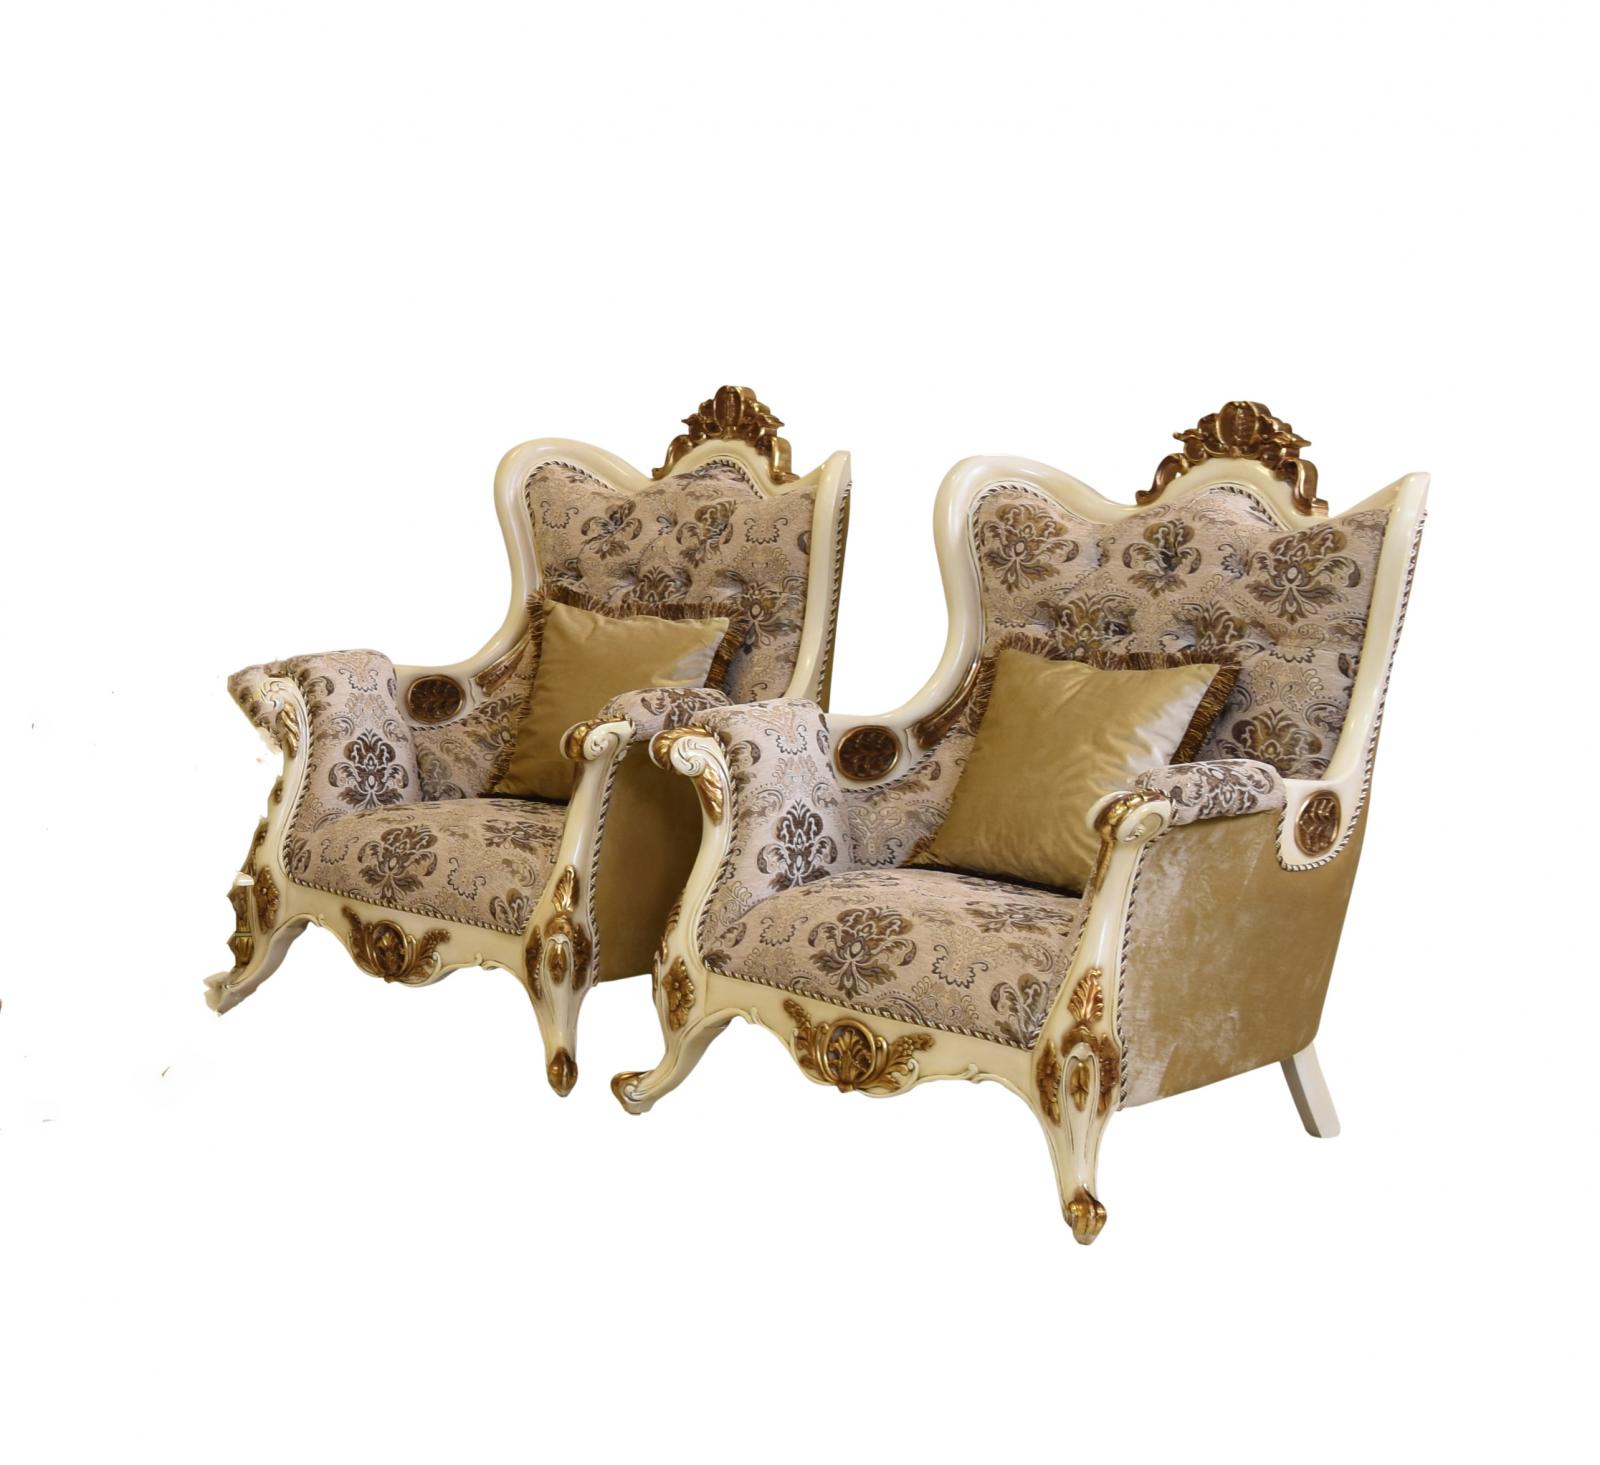 Classic  Traditional Beige  Gold  Antique Wood  Solid Hardwood and Fabric Arm Chair Set EUROPEAN FURNITURE 37008-C-Set-2